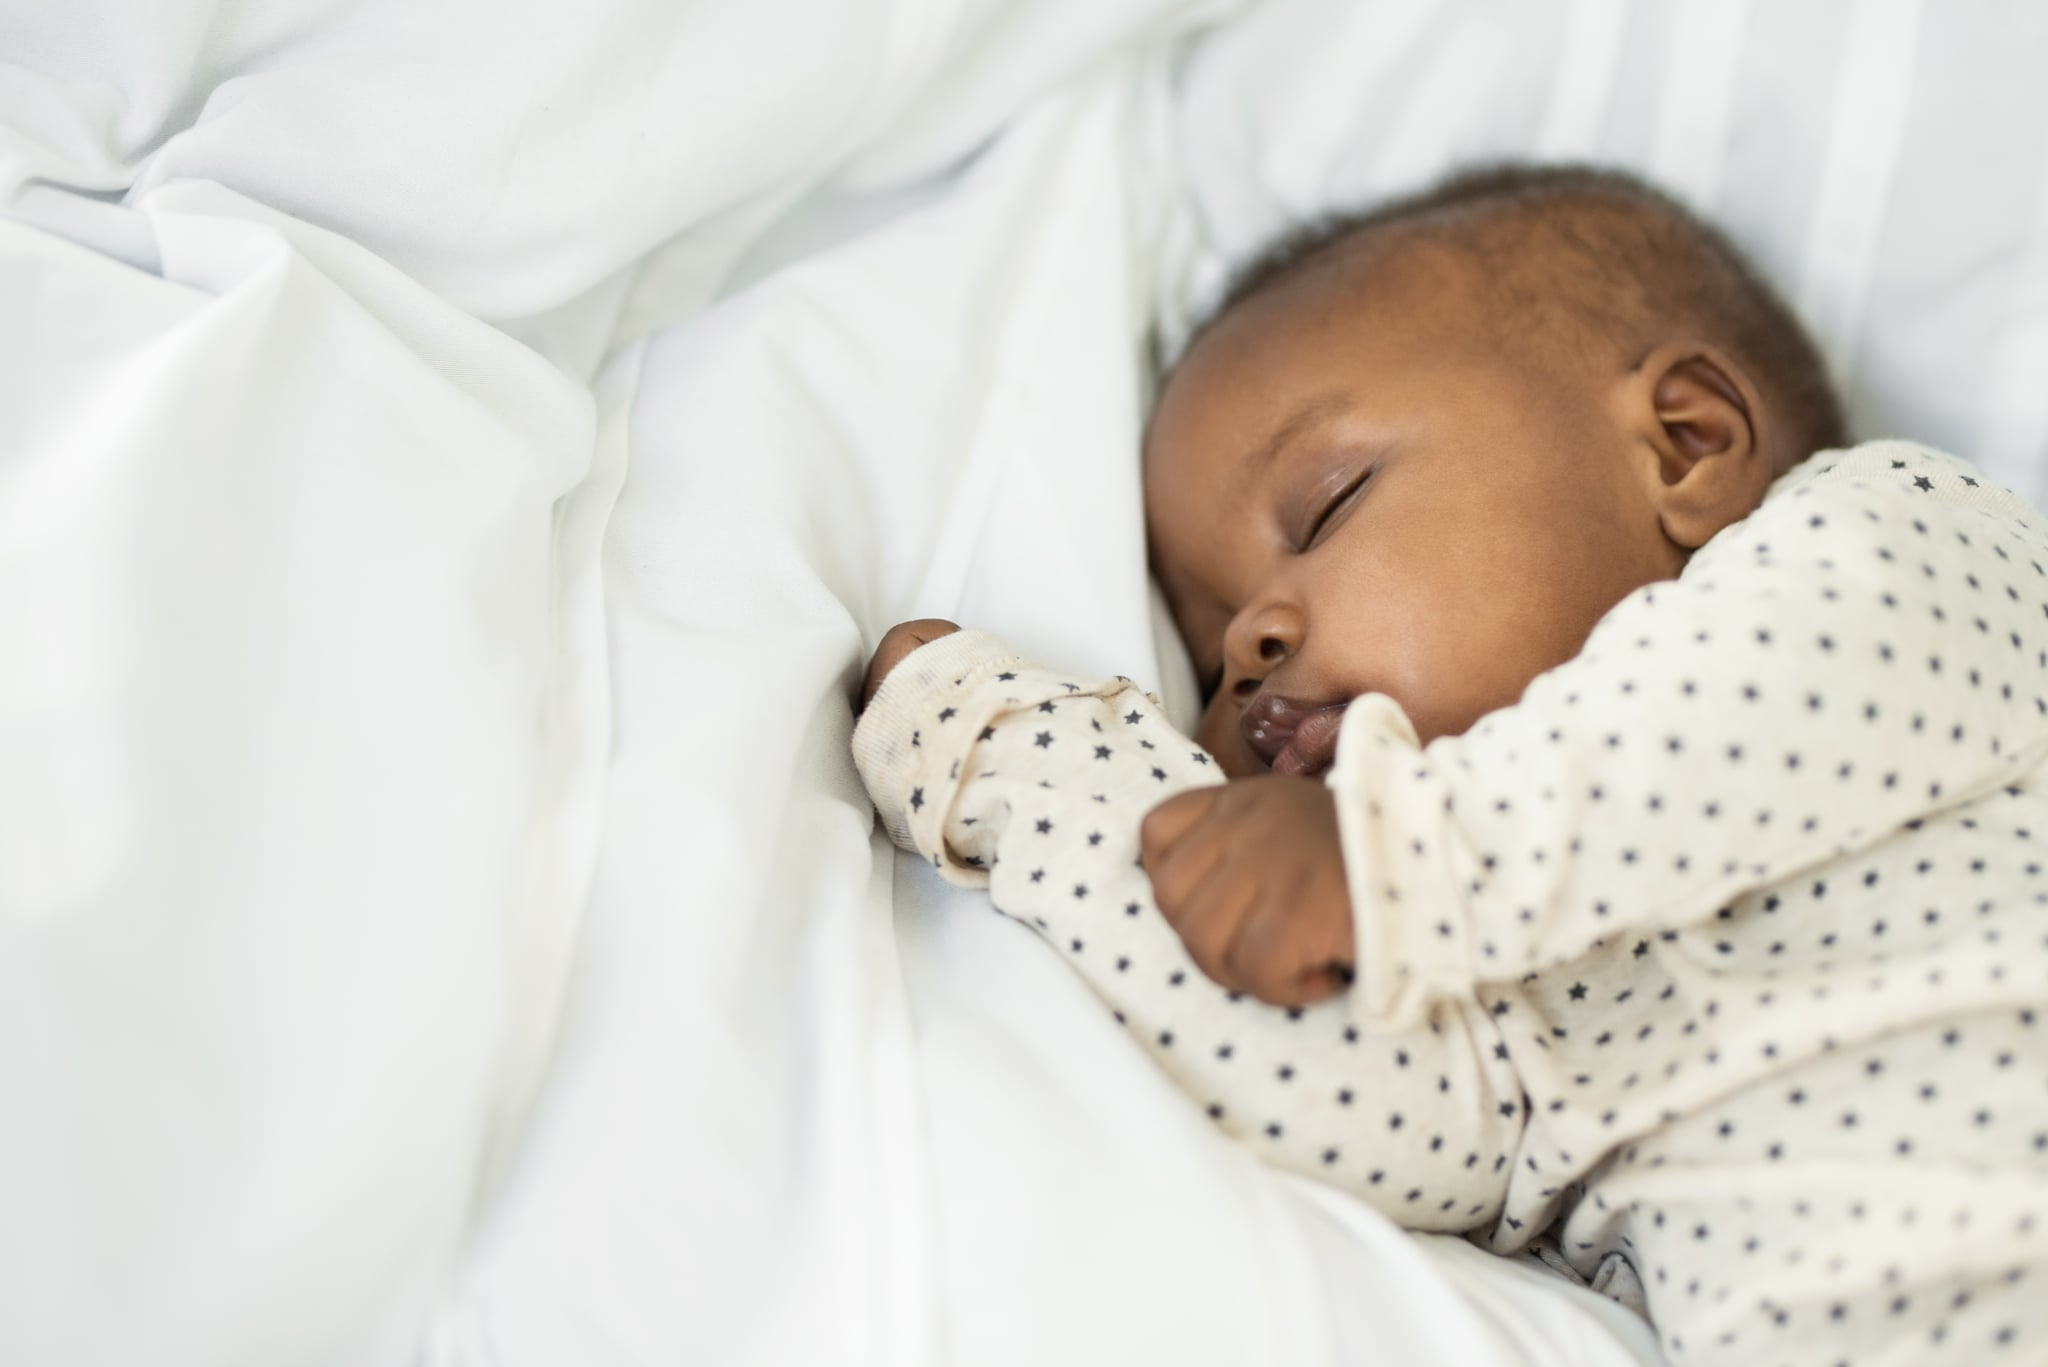 Cropped shot of a baby girl sleeping peacefully at home